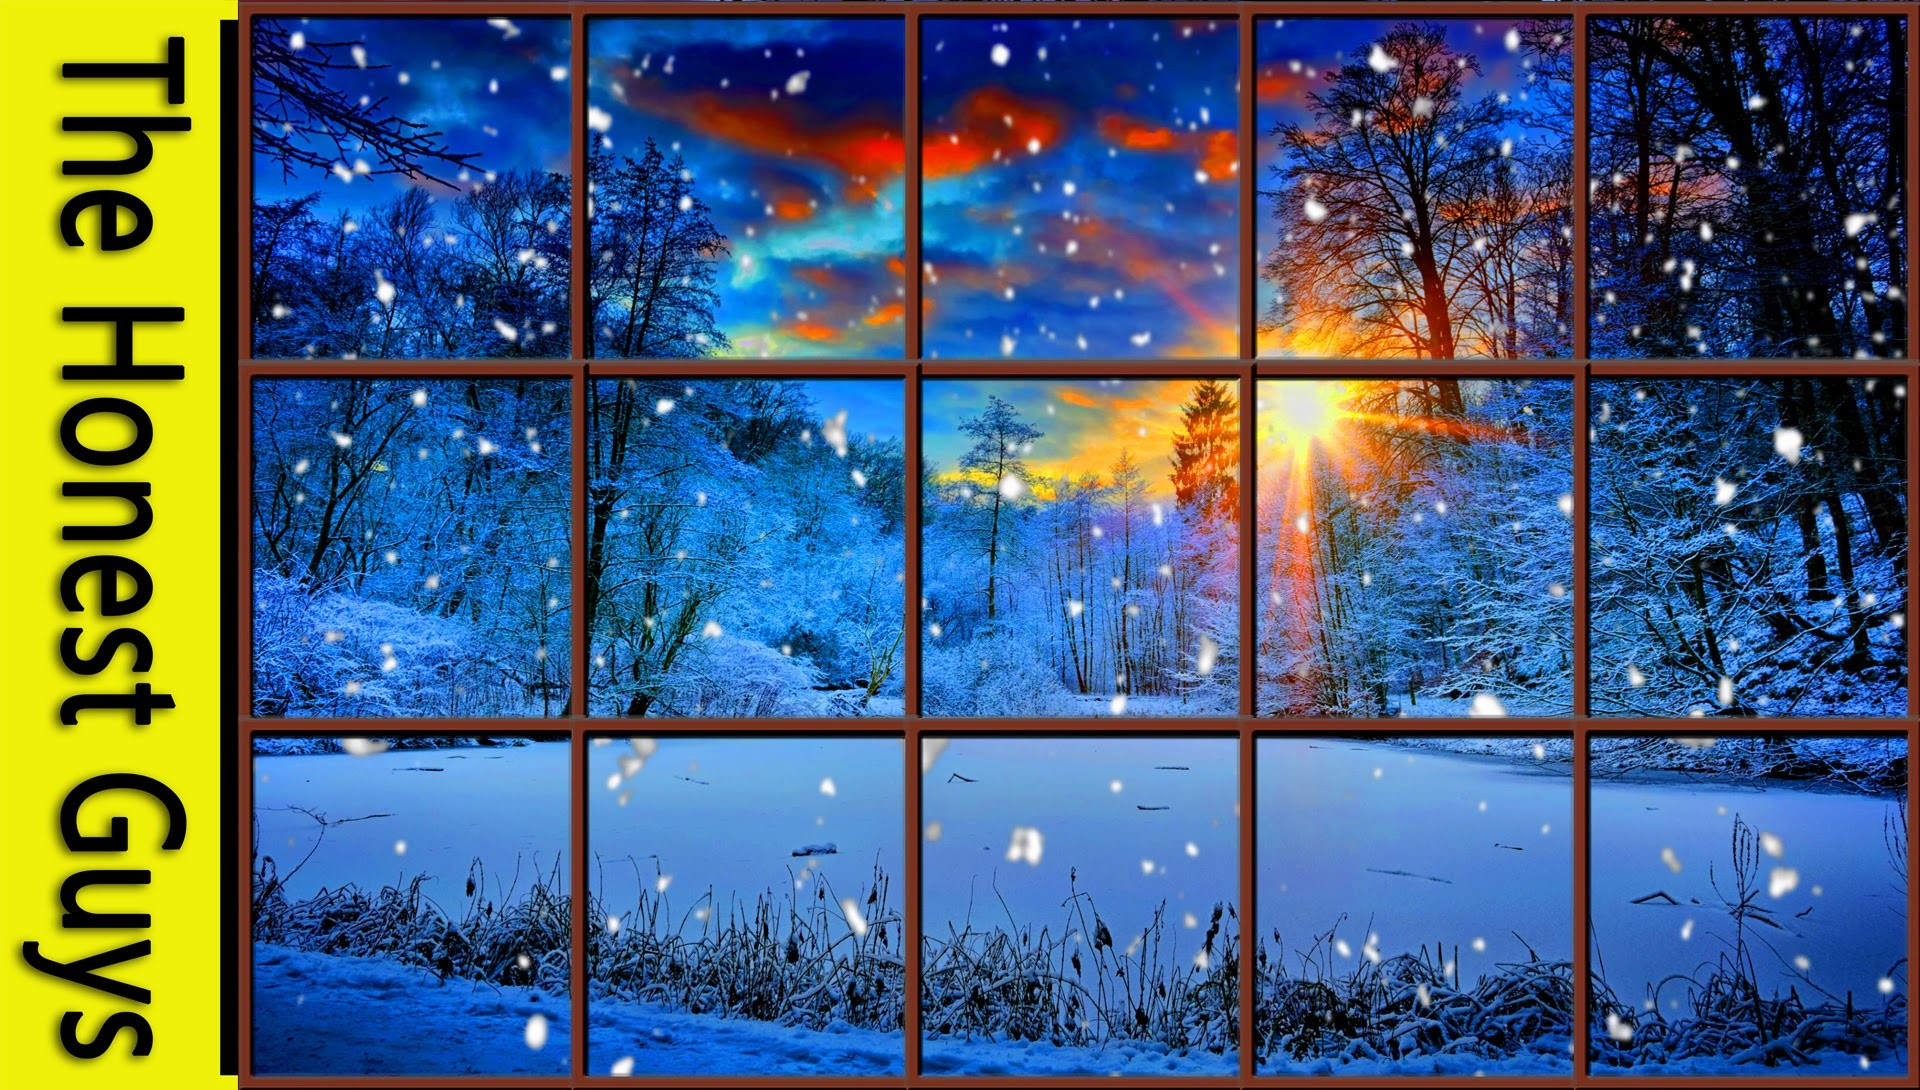 Res: 1920x1090, WINTER WINDOW SNOW SCENE (4K) - Living Wallpaper with Ambient Fireplace  Sounds - YouTube